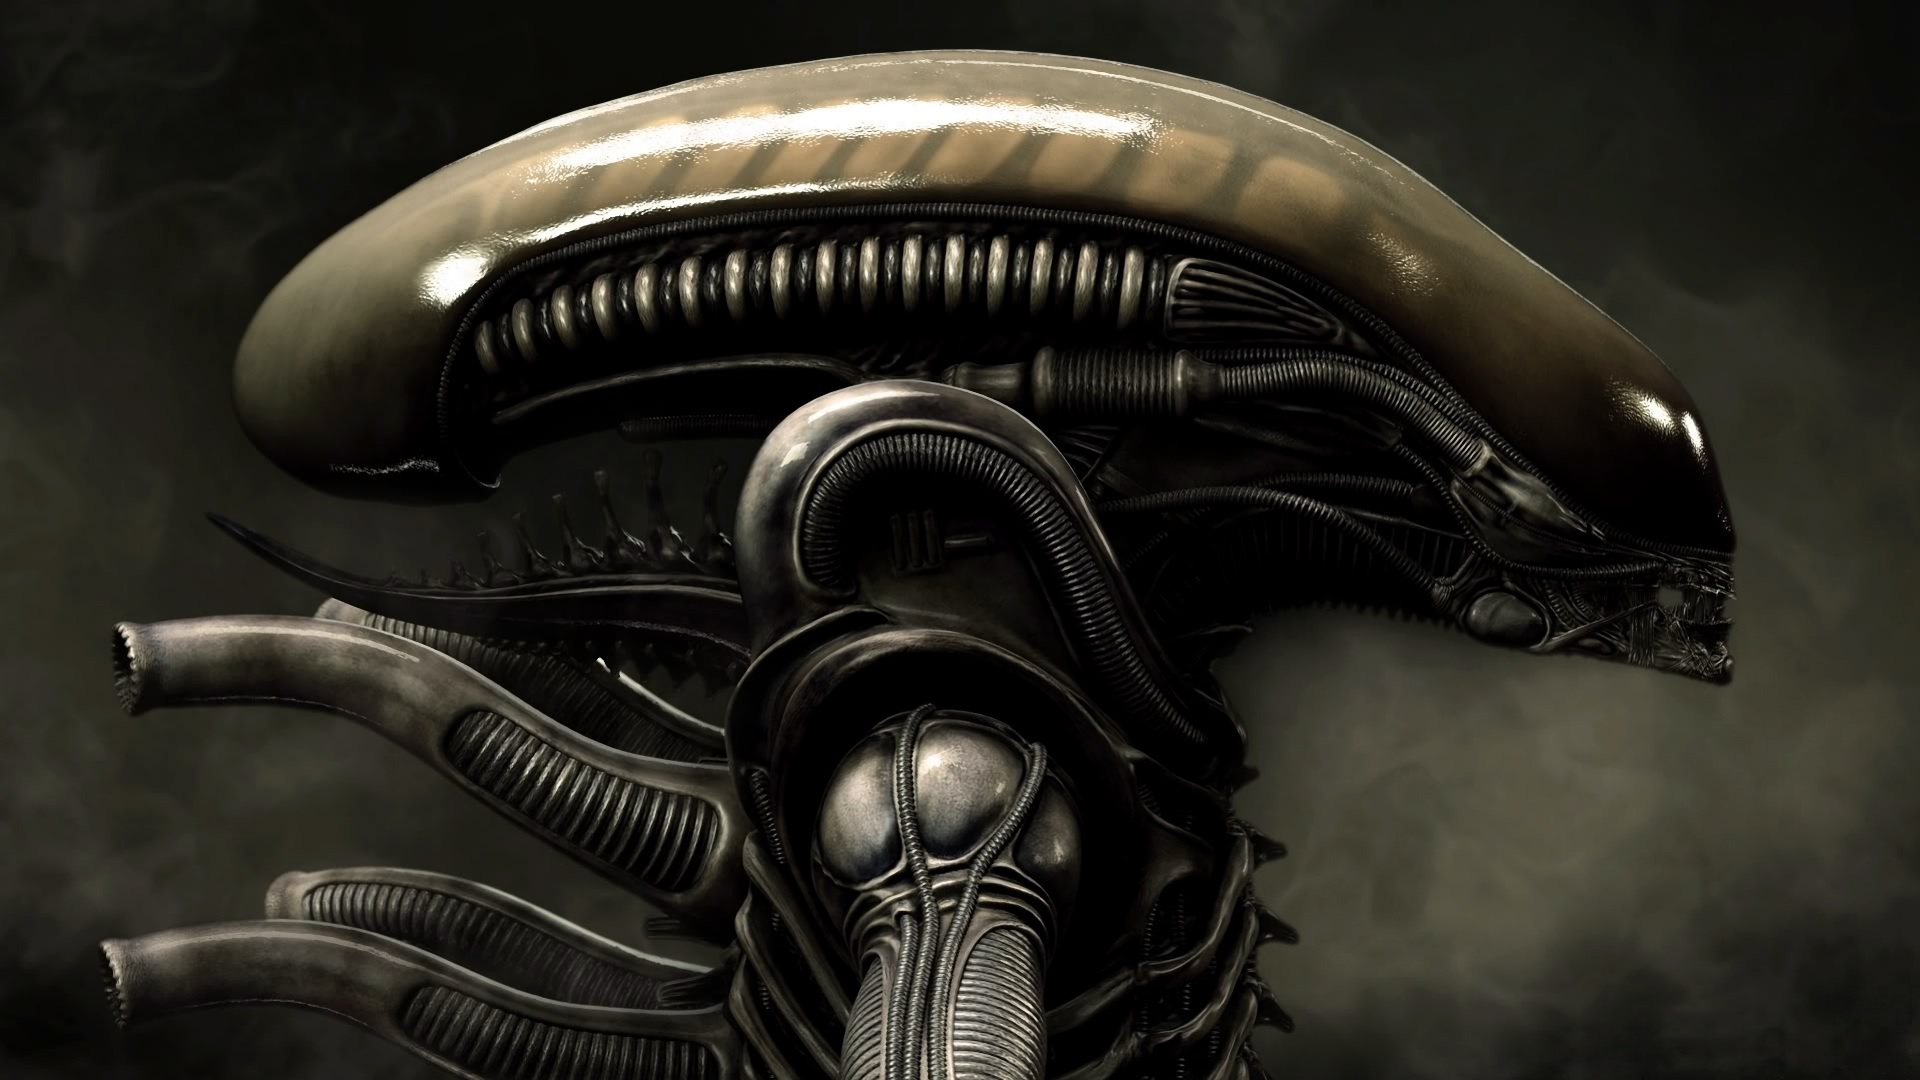 Alien Gallery: [Visions Of Horror] H.R. Giger's 'Necronomicon' / Ridley